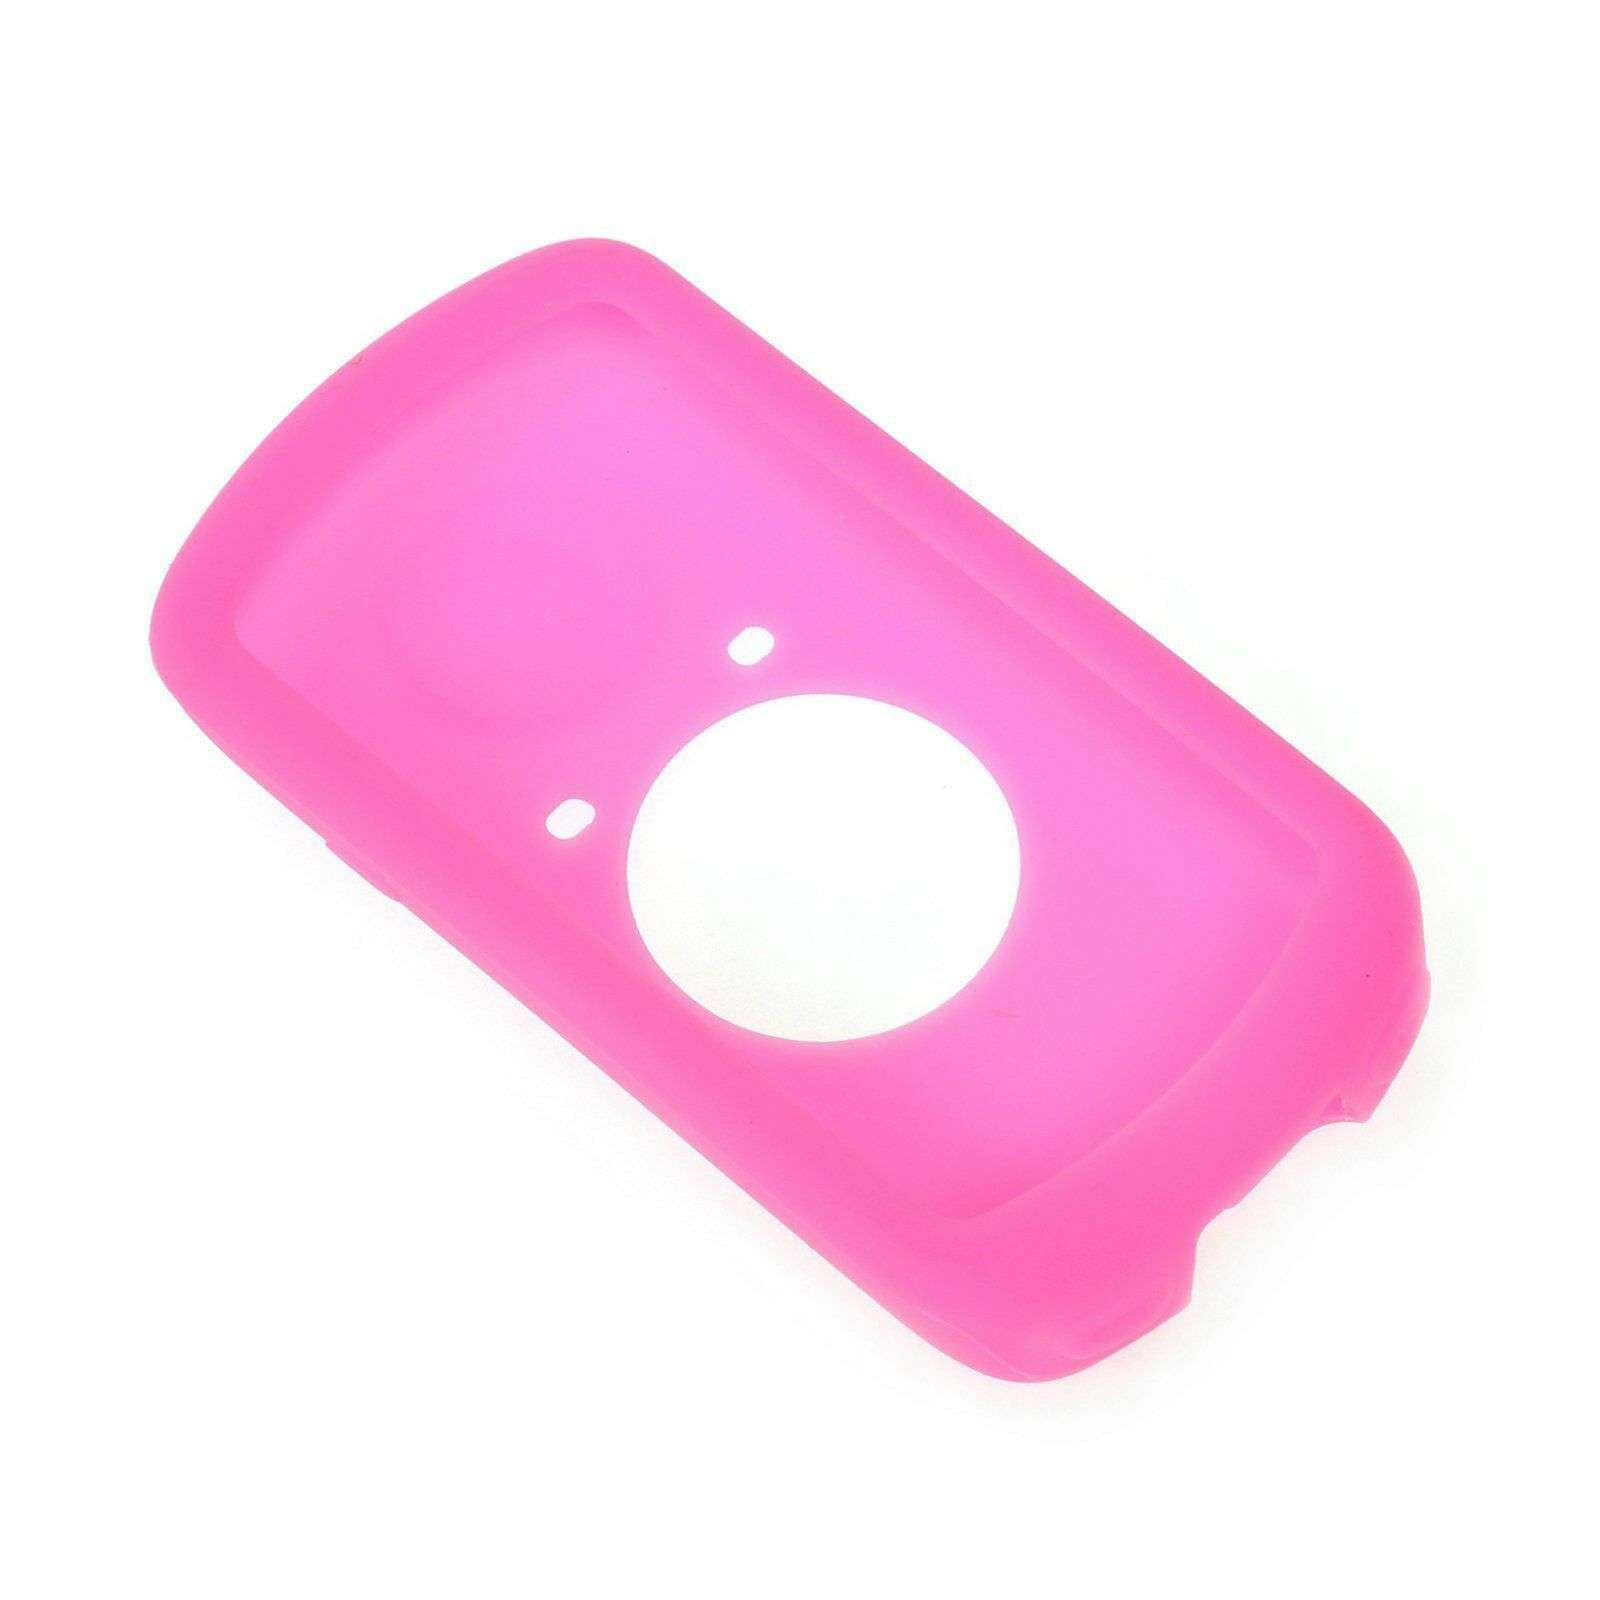 Silicone Protective cover for Garmin Edge 1030 GPS & Tempered Glass screen  cover